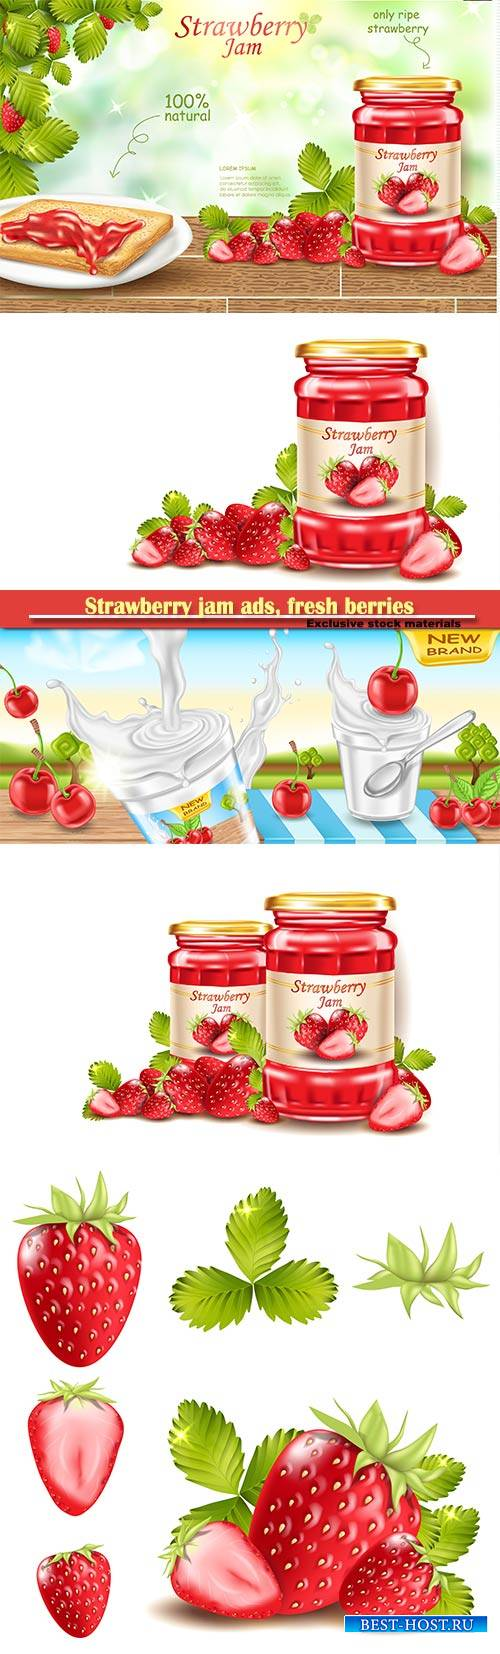 Strawberry jam ads, fresh berries realistic 3d illustration